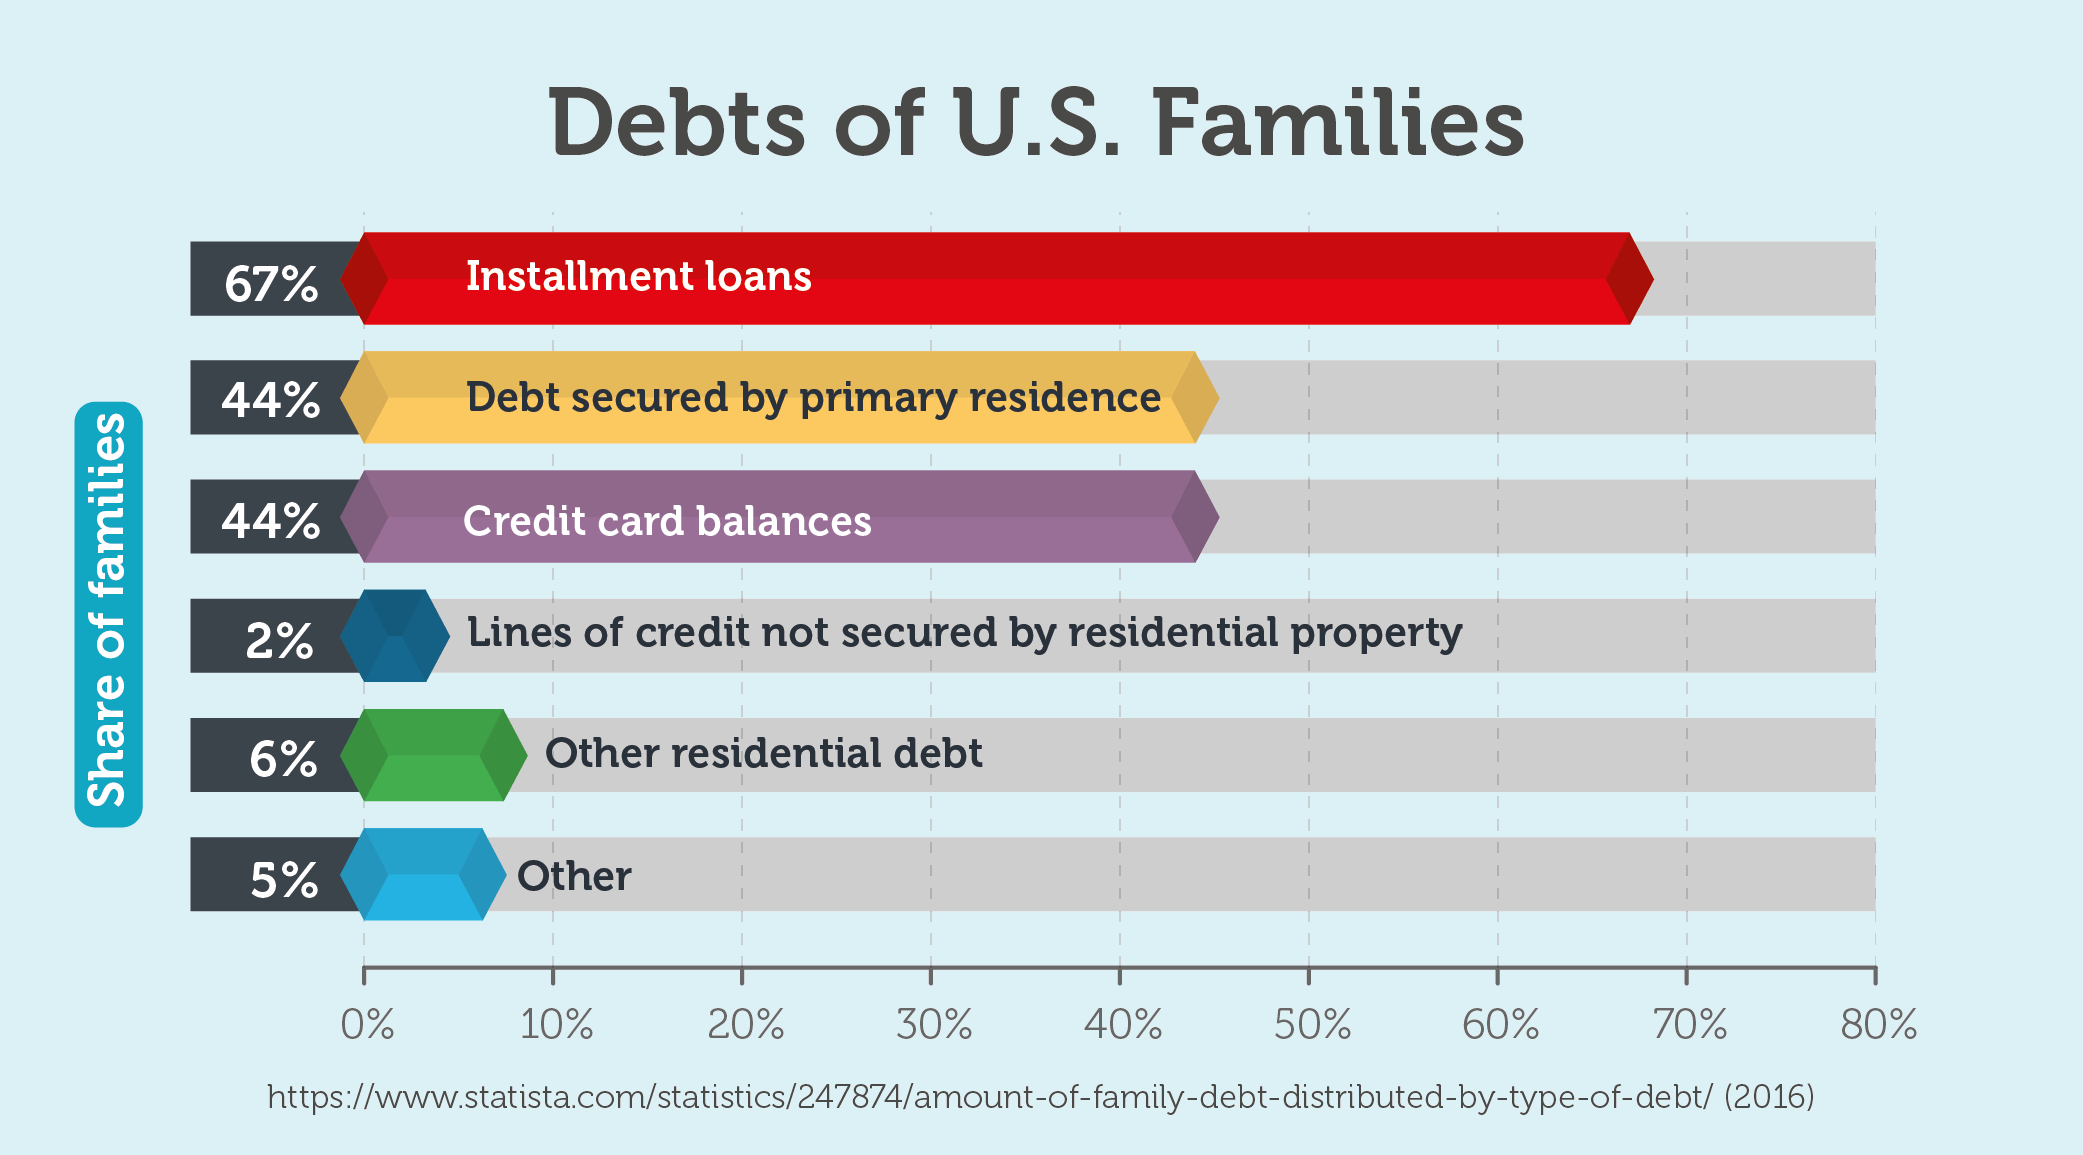 Debts of U.S. Families